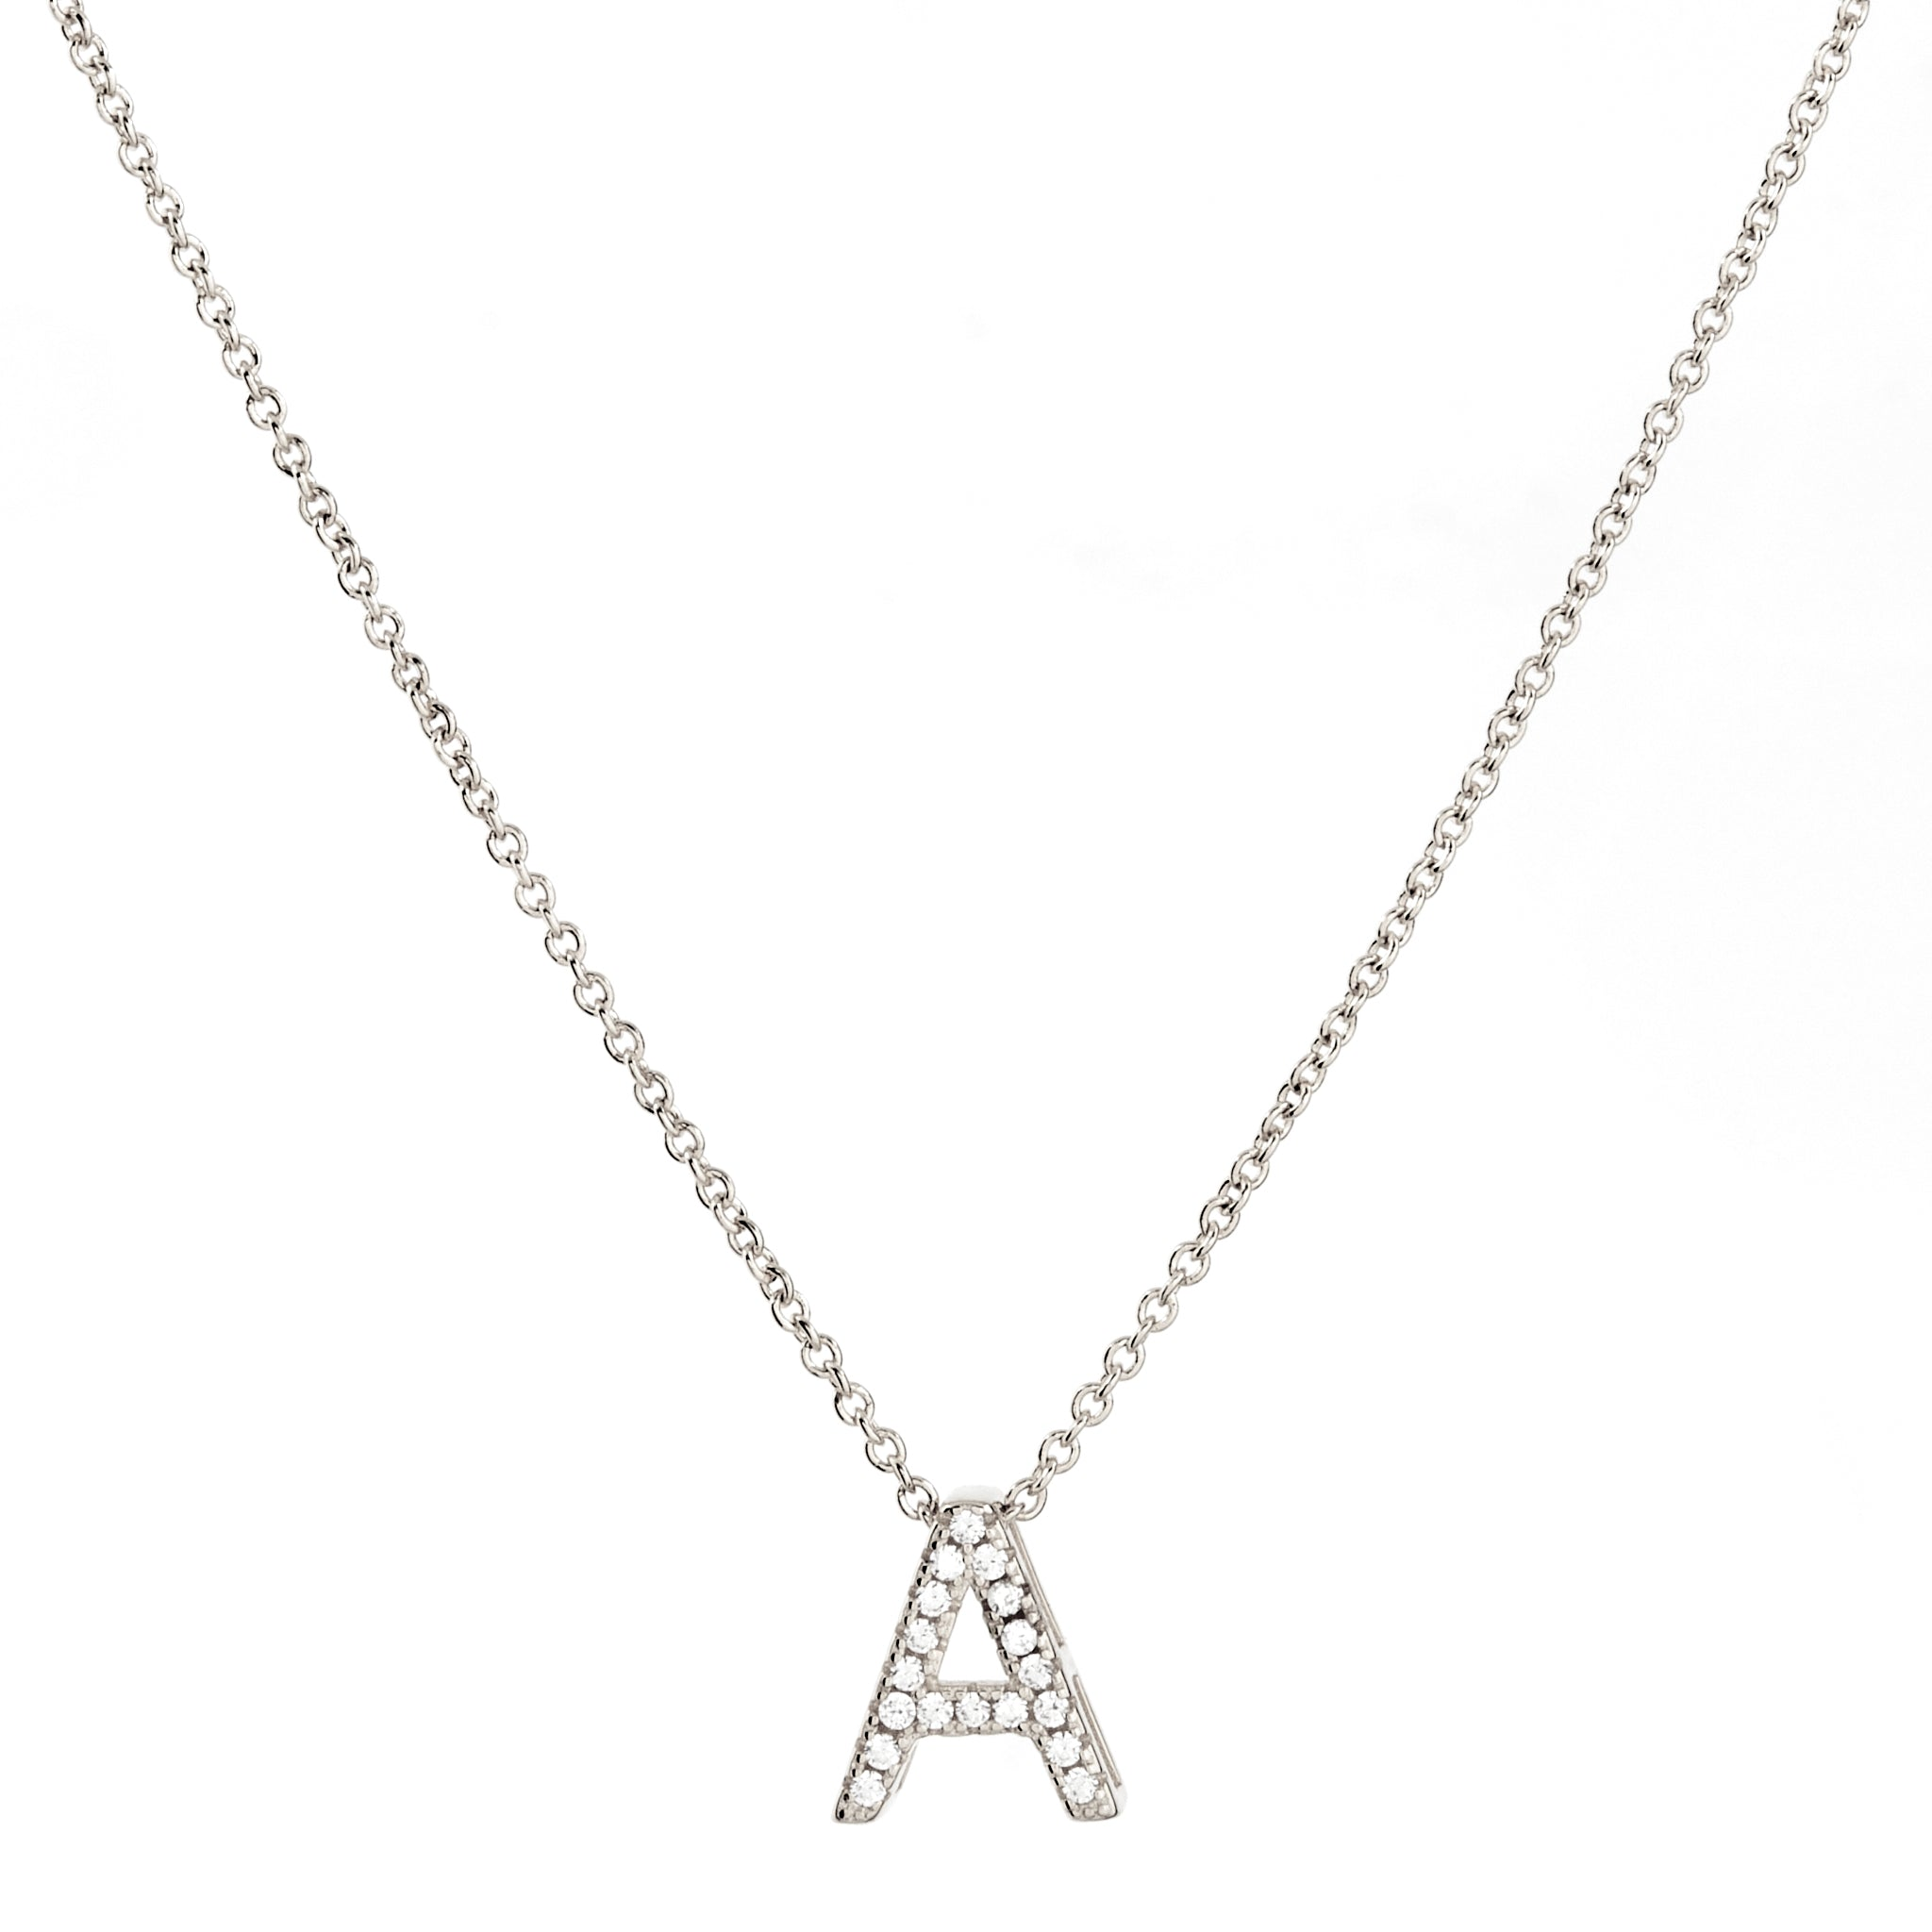 A-Z Initials by Sybella - Silver with Cubic Zirconia